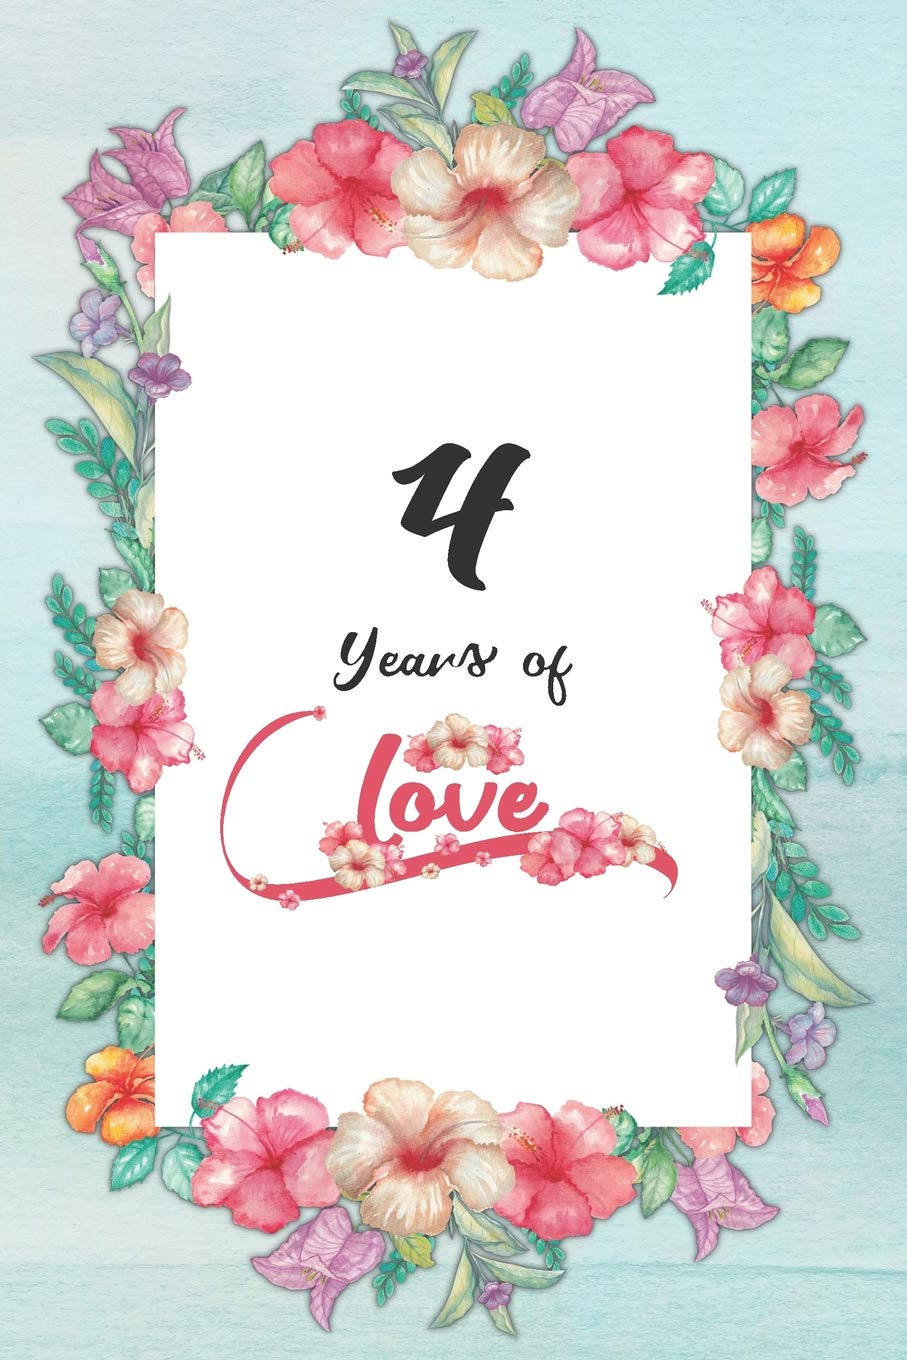 4th Anniversary Journal Lined Journal Notebook 4th Anniversary Gifts For Her Romantic 4 Year Wedding Anniversary Celebration Gift Fun And Practical Alternative To A Card 4 Years